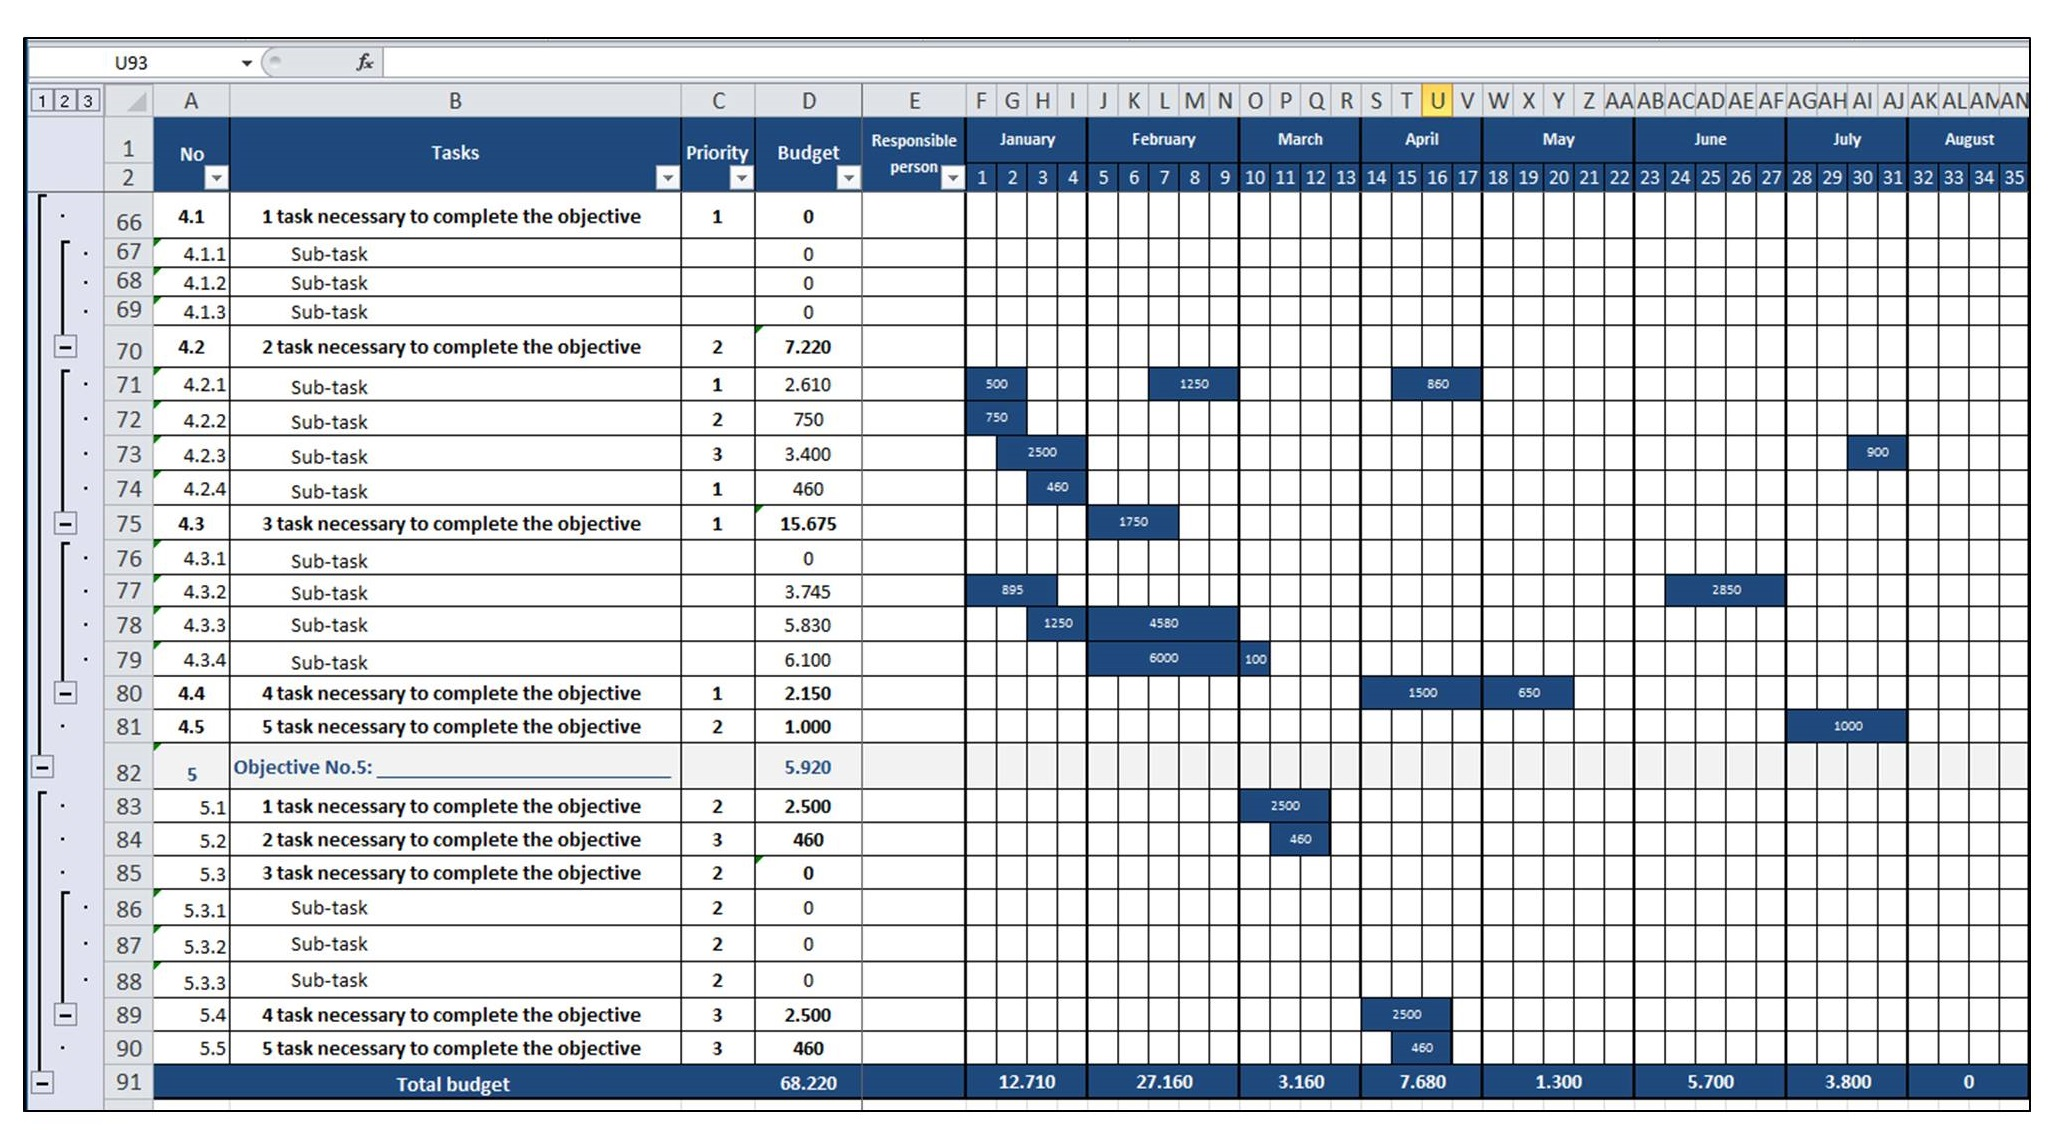 Marketing Plan - Gantt Diagram